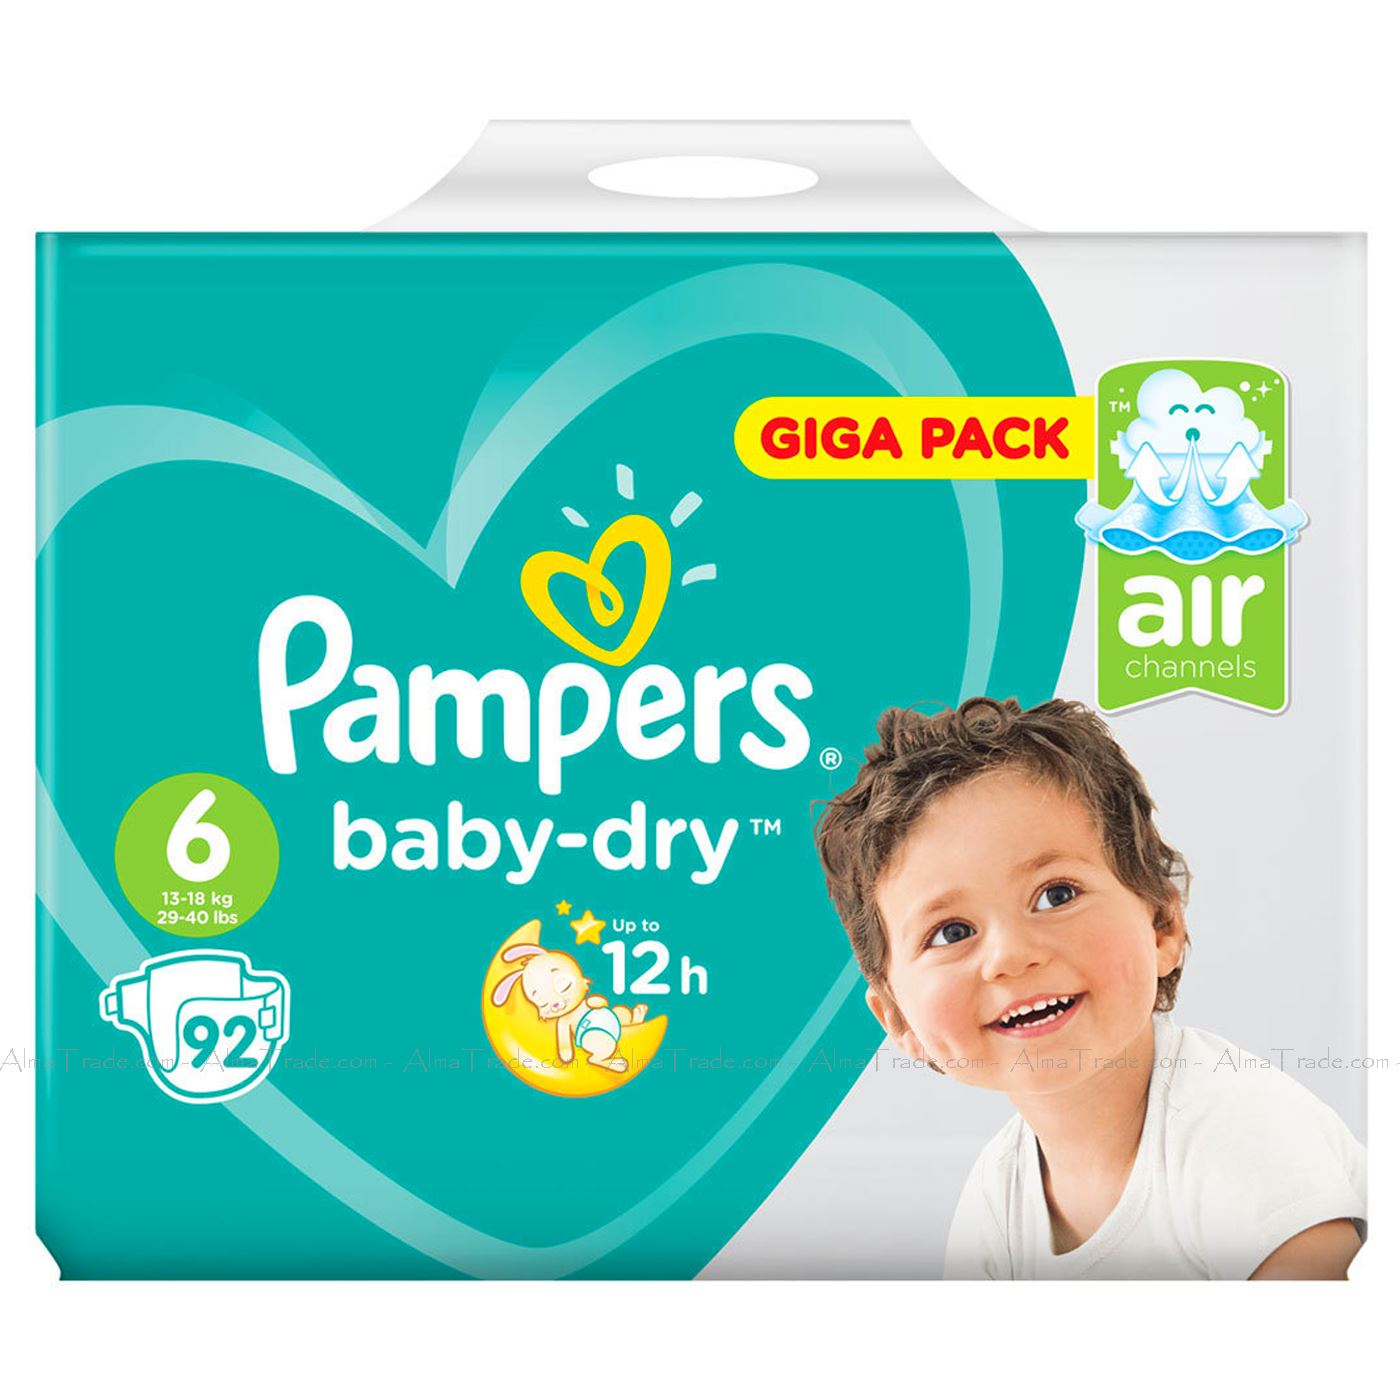 Pampers-Baby-Dry-Nappy-Air-Channels-Nappies-Size-1-2-3-4-5-6-7-Jumbo-Giga-Pack thumbnail 31